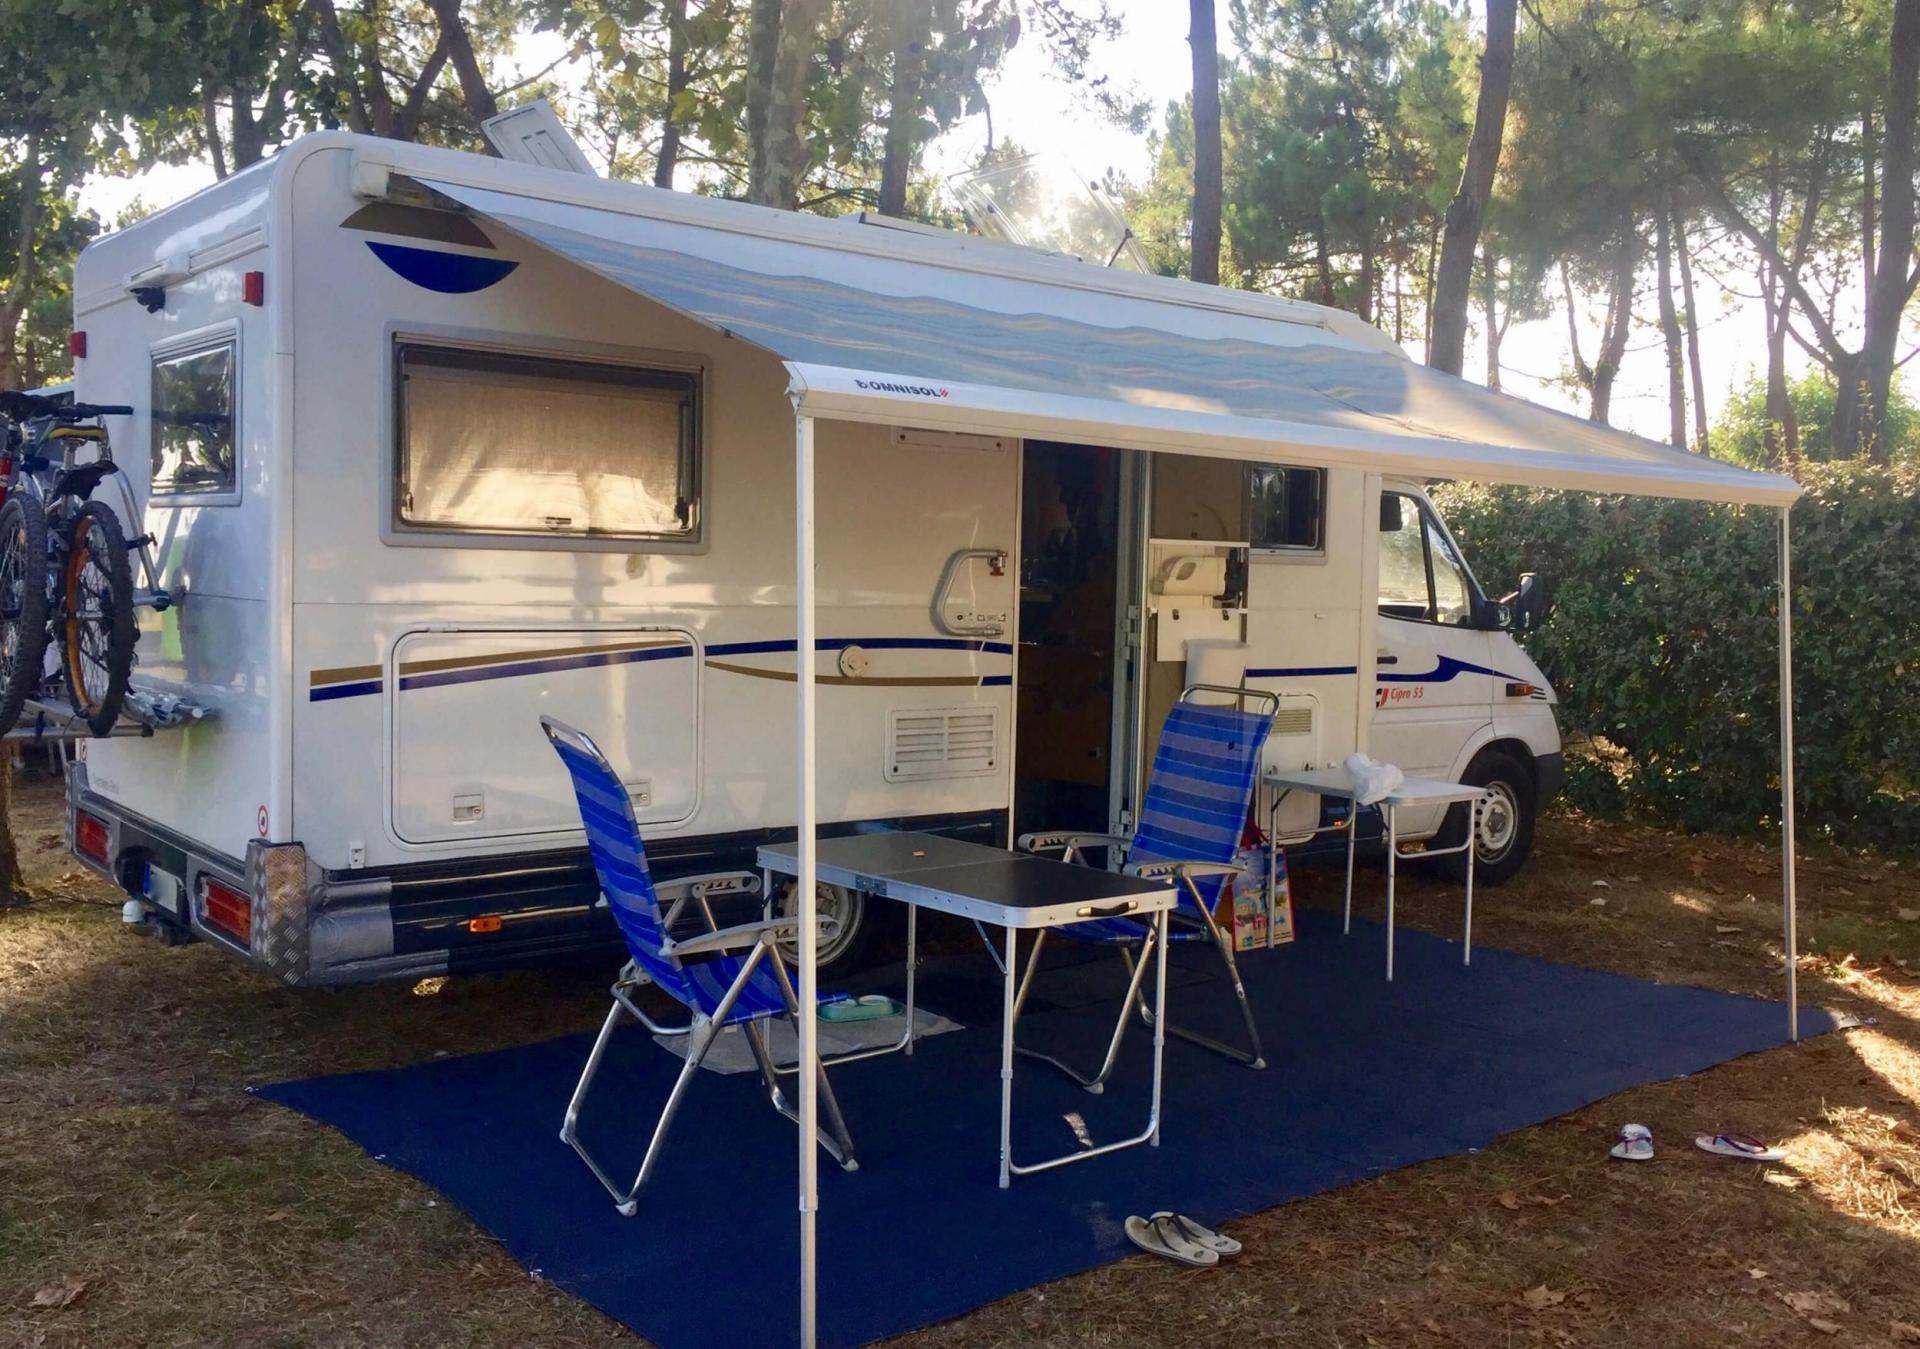 camping-car CI (Caravans International) CIPRO 55